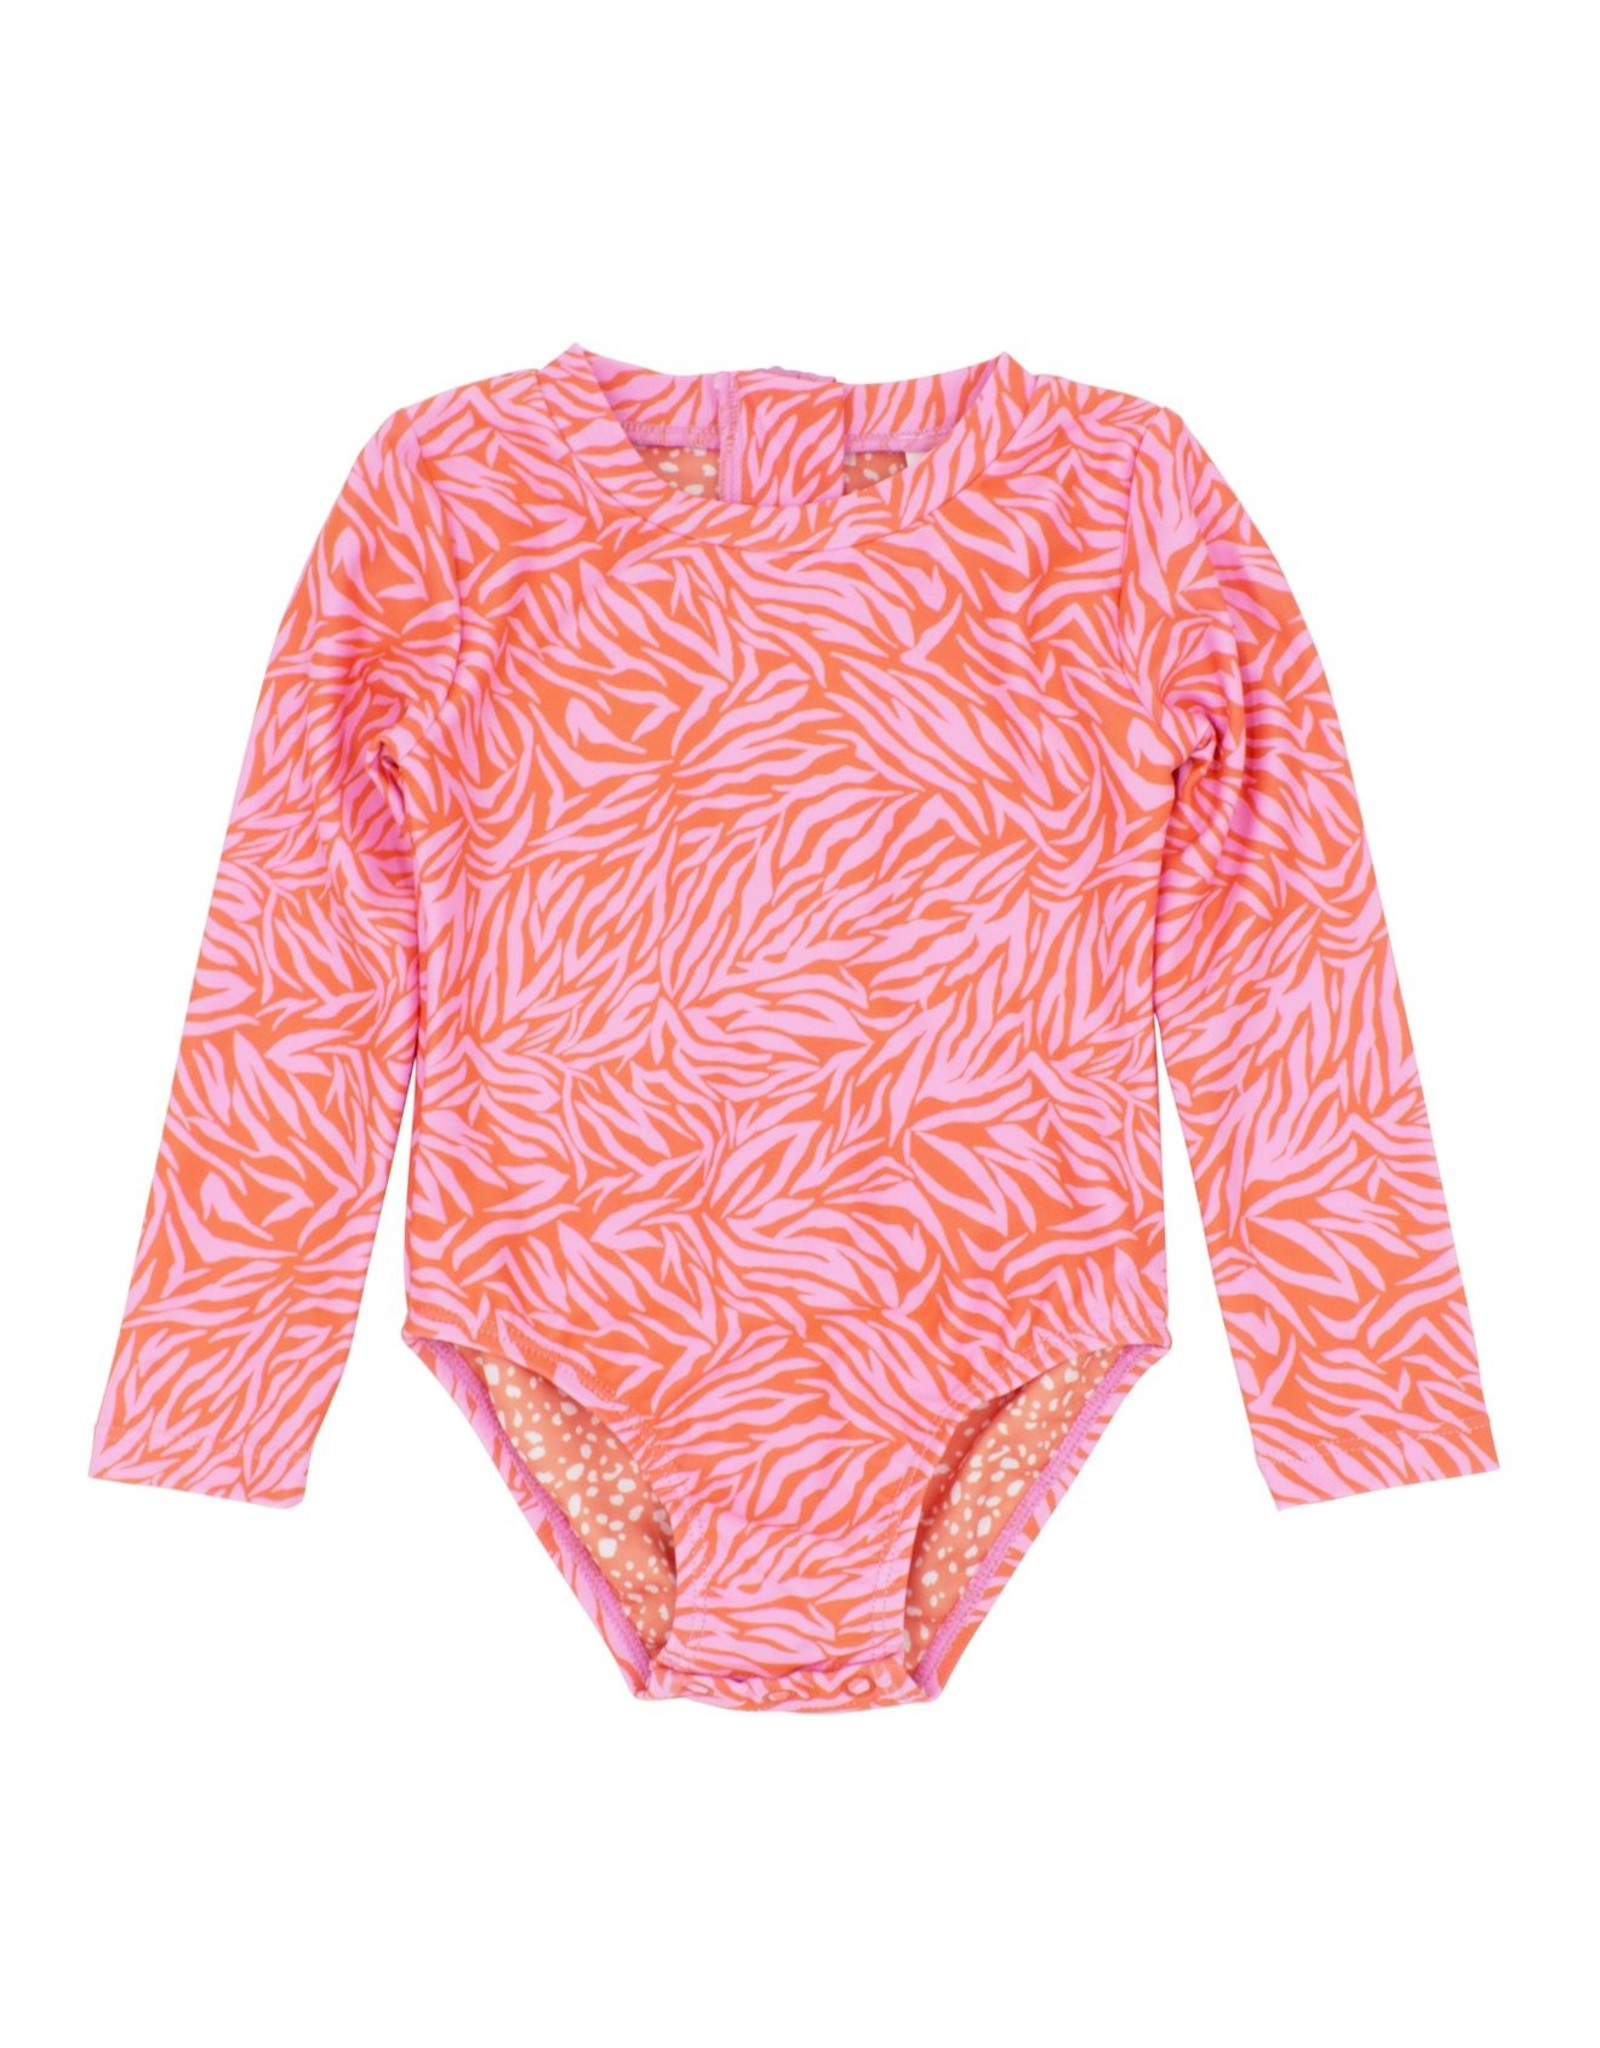 Feather 4 Arrow baby surf suit- coral crush